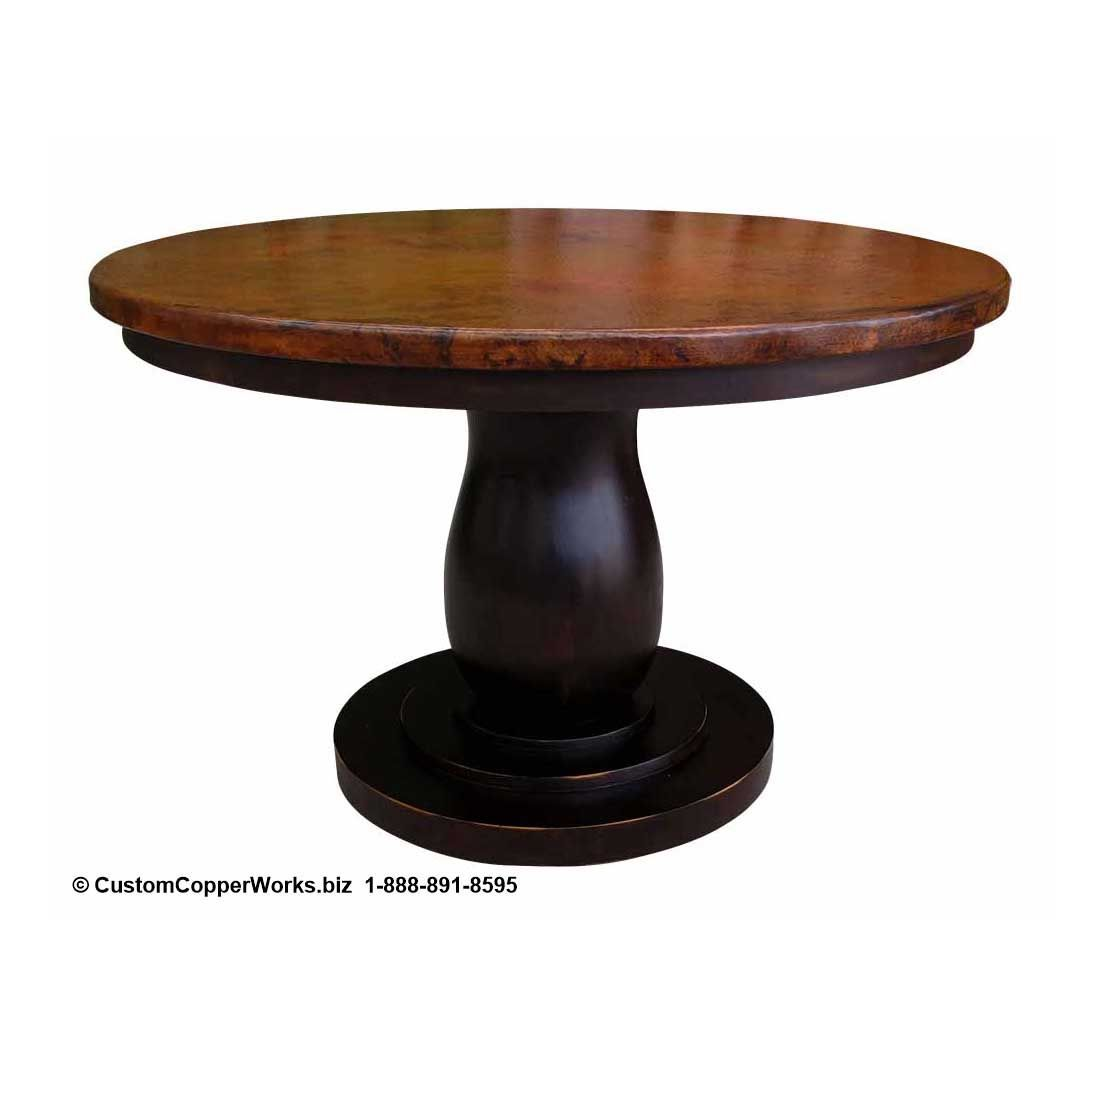 Copper Top Round Dining Table Ad85b49b922f42873be16839d66b5d0d Copper top round dining table ad85b49b922f42873be16839d66b5d0d